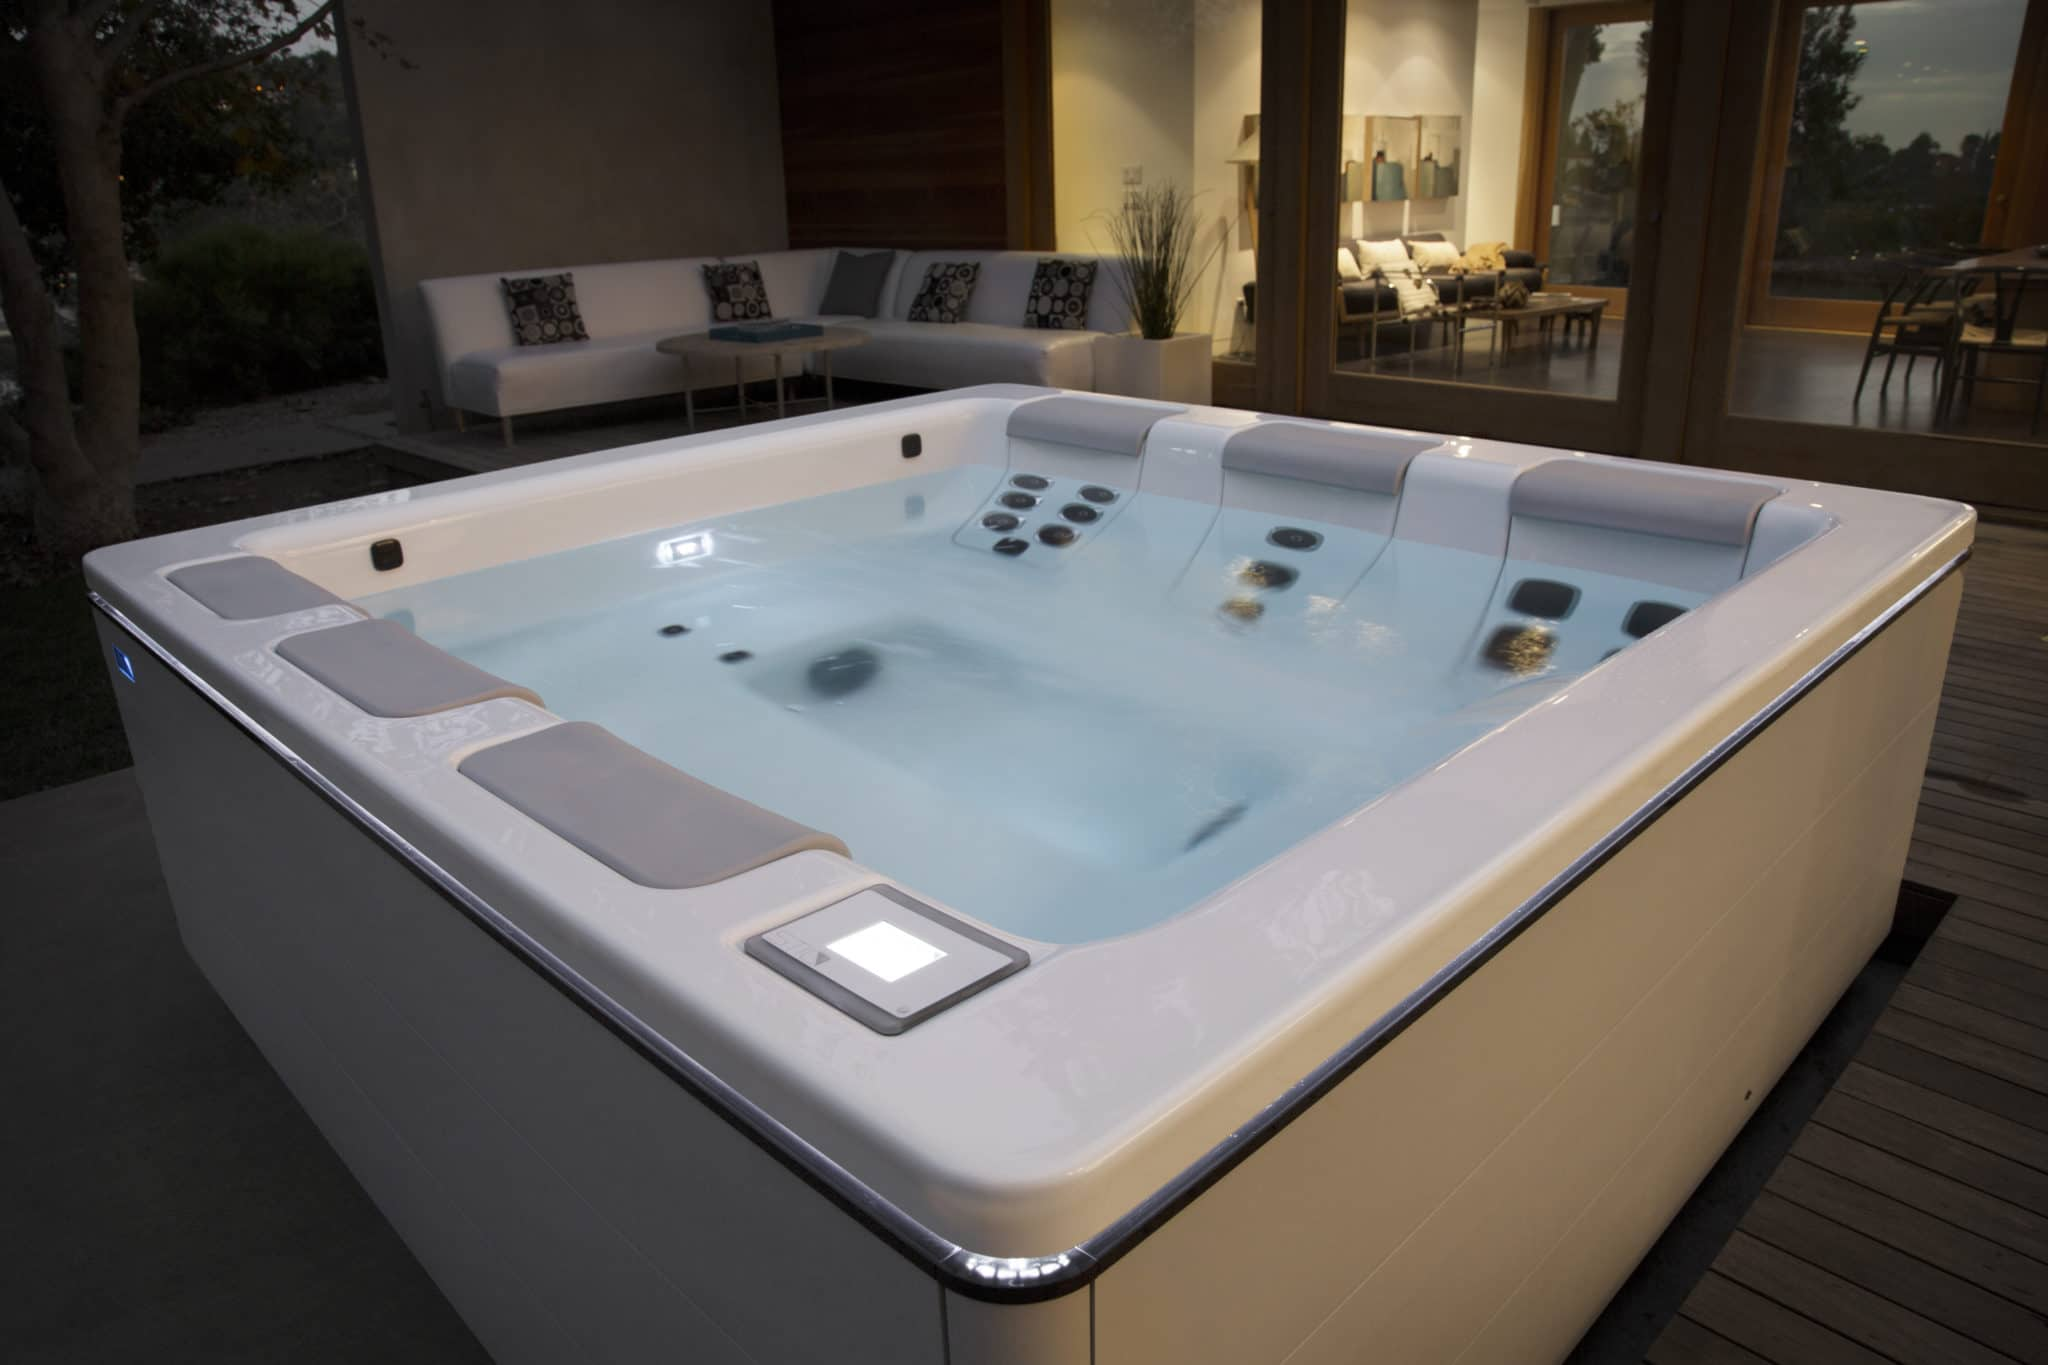 Aquaparx Whirlpool Spa Jacuzzi Spa Pool Interior Modern Posh Clean Inside Spa Nelson